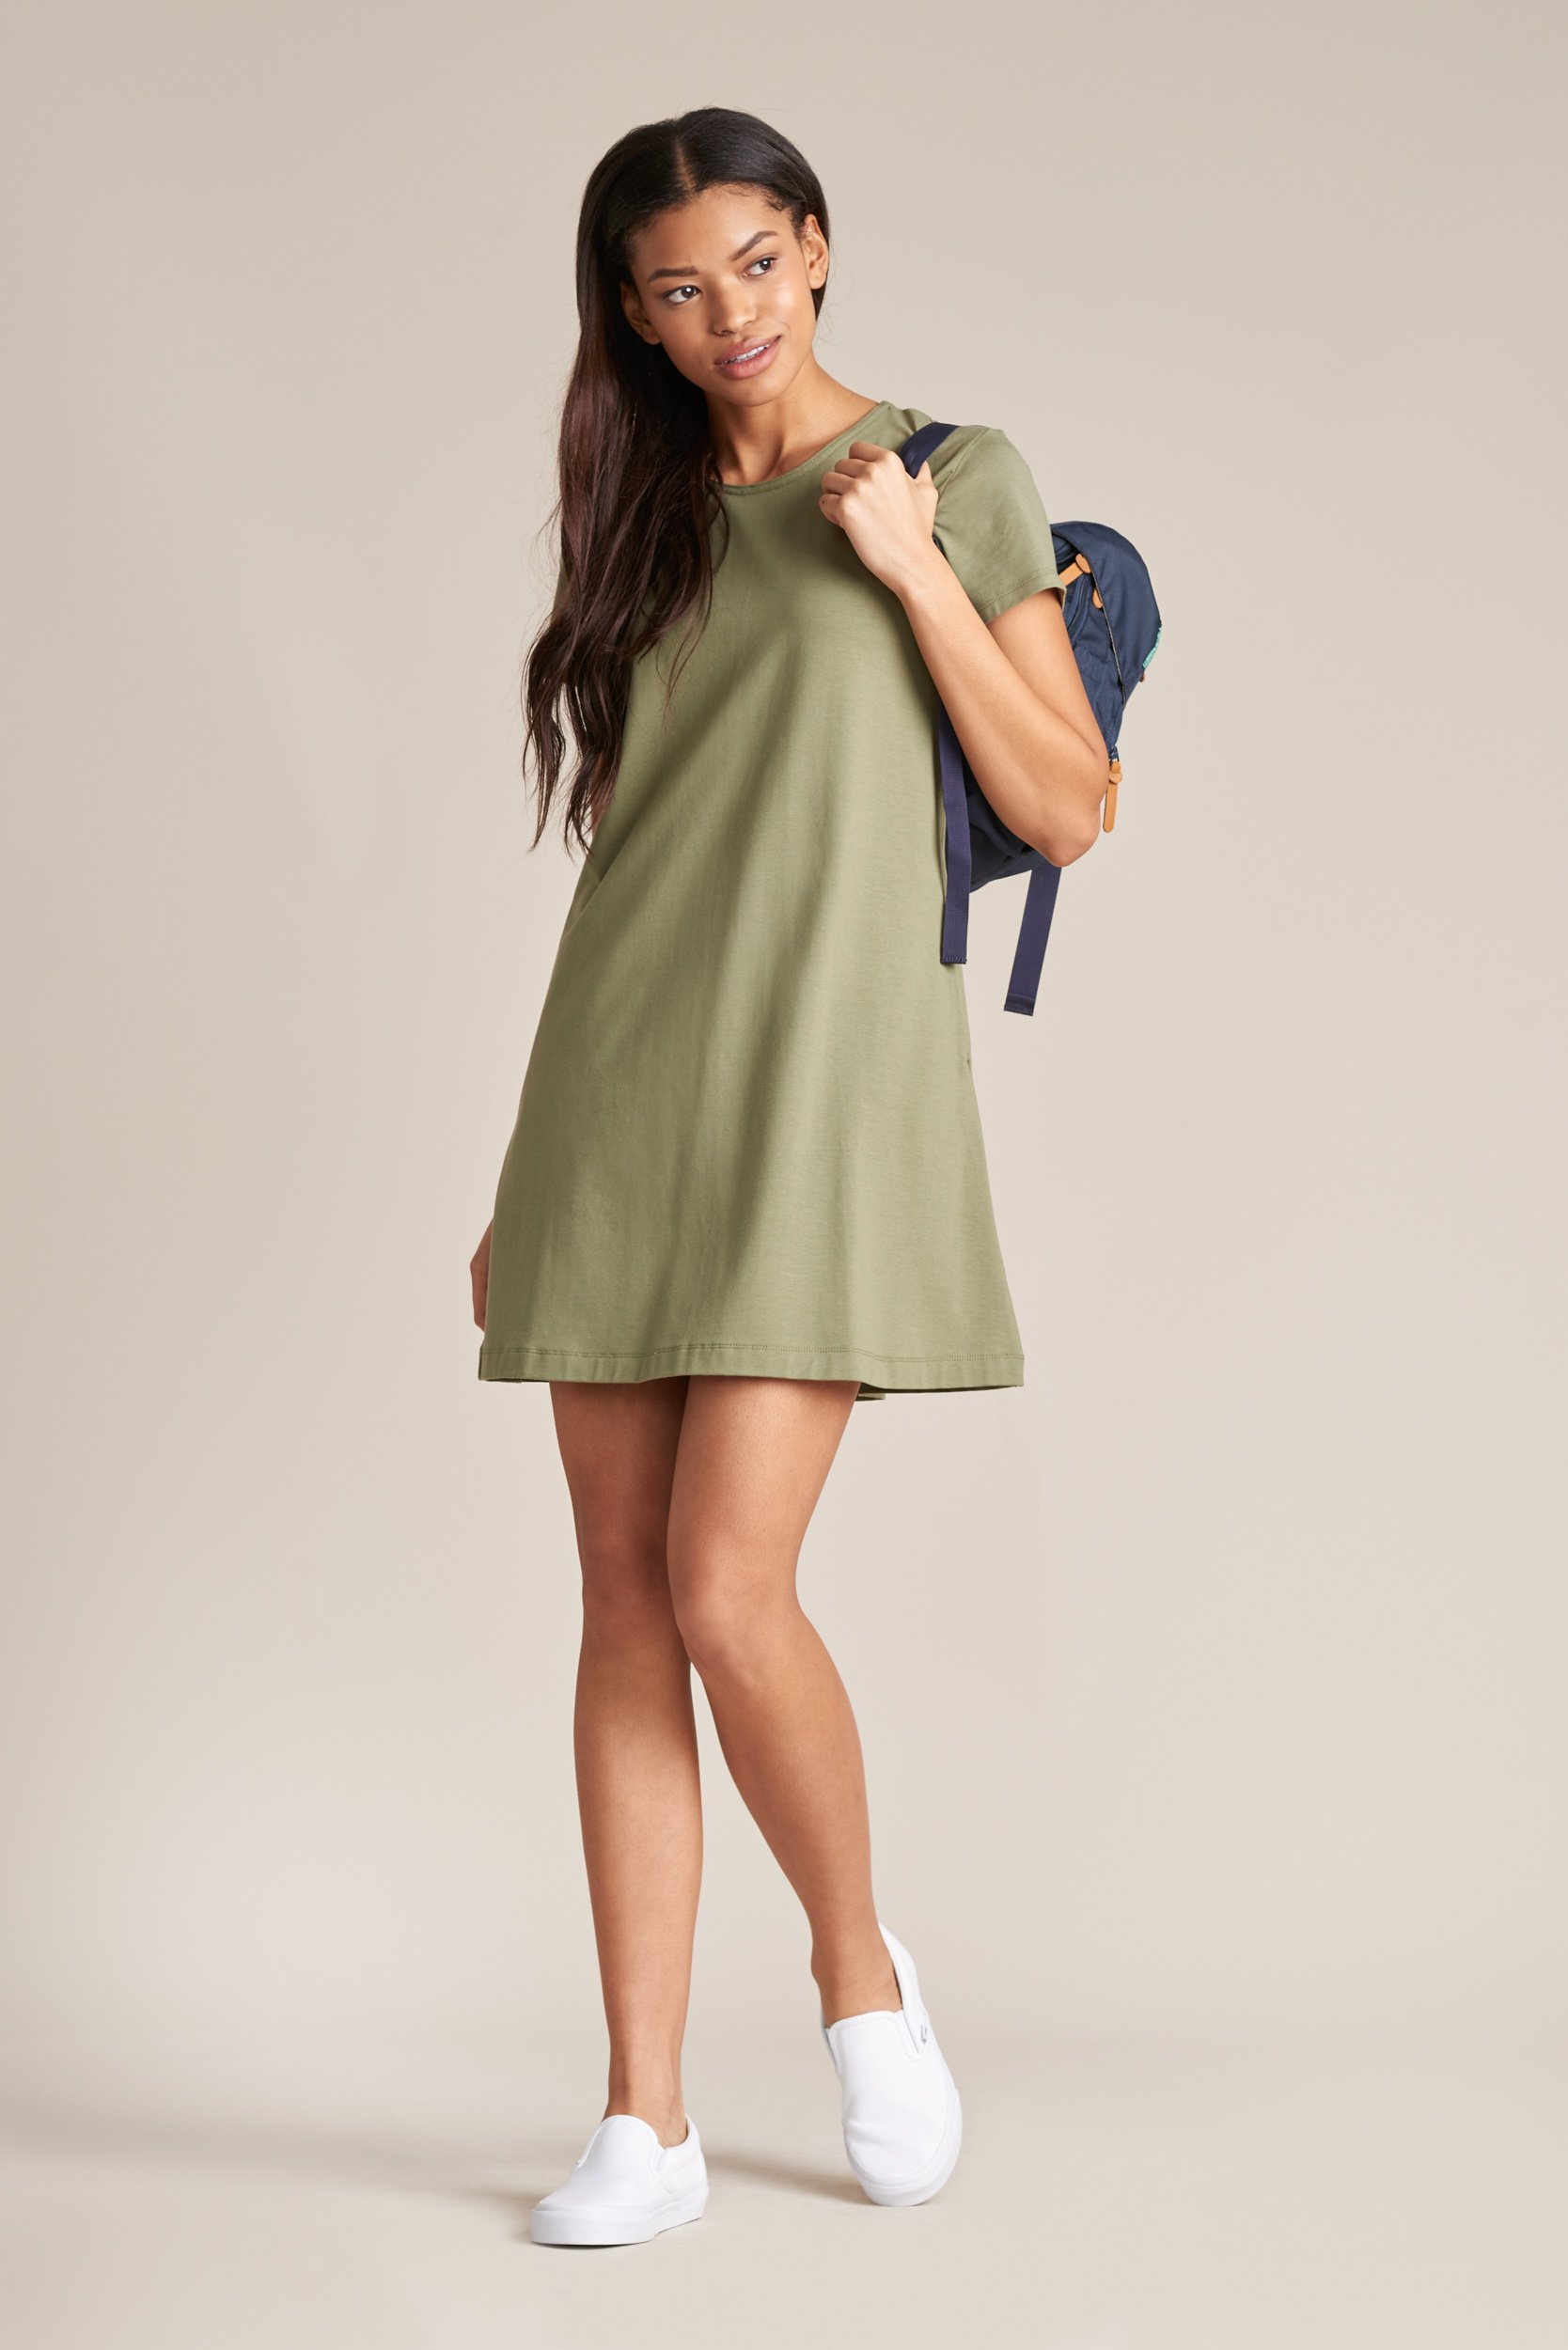 Sustainable Clothing for Women